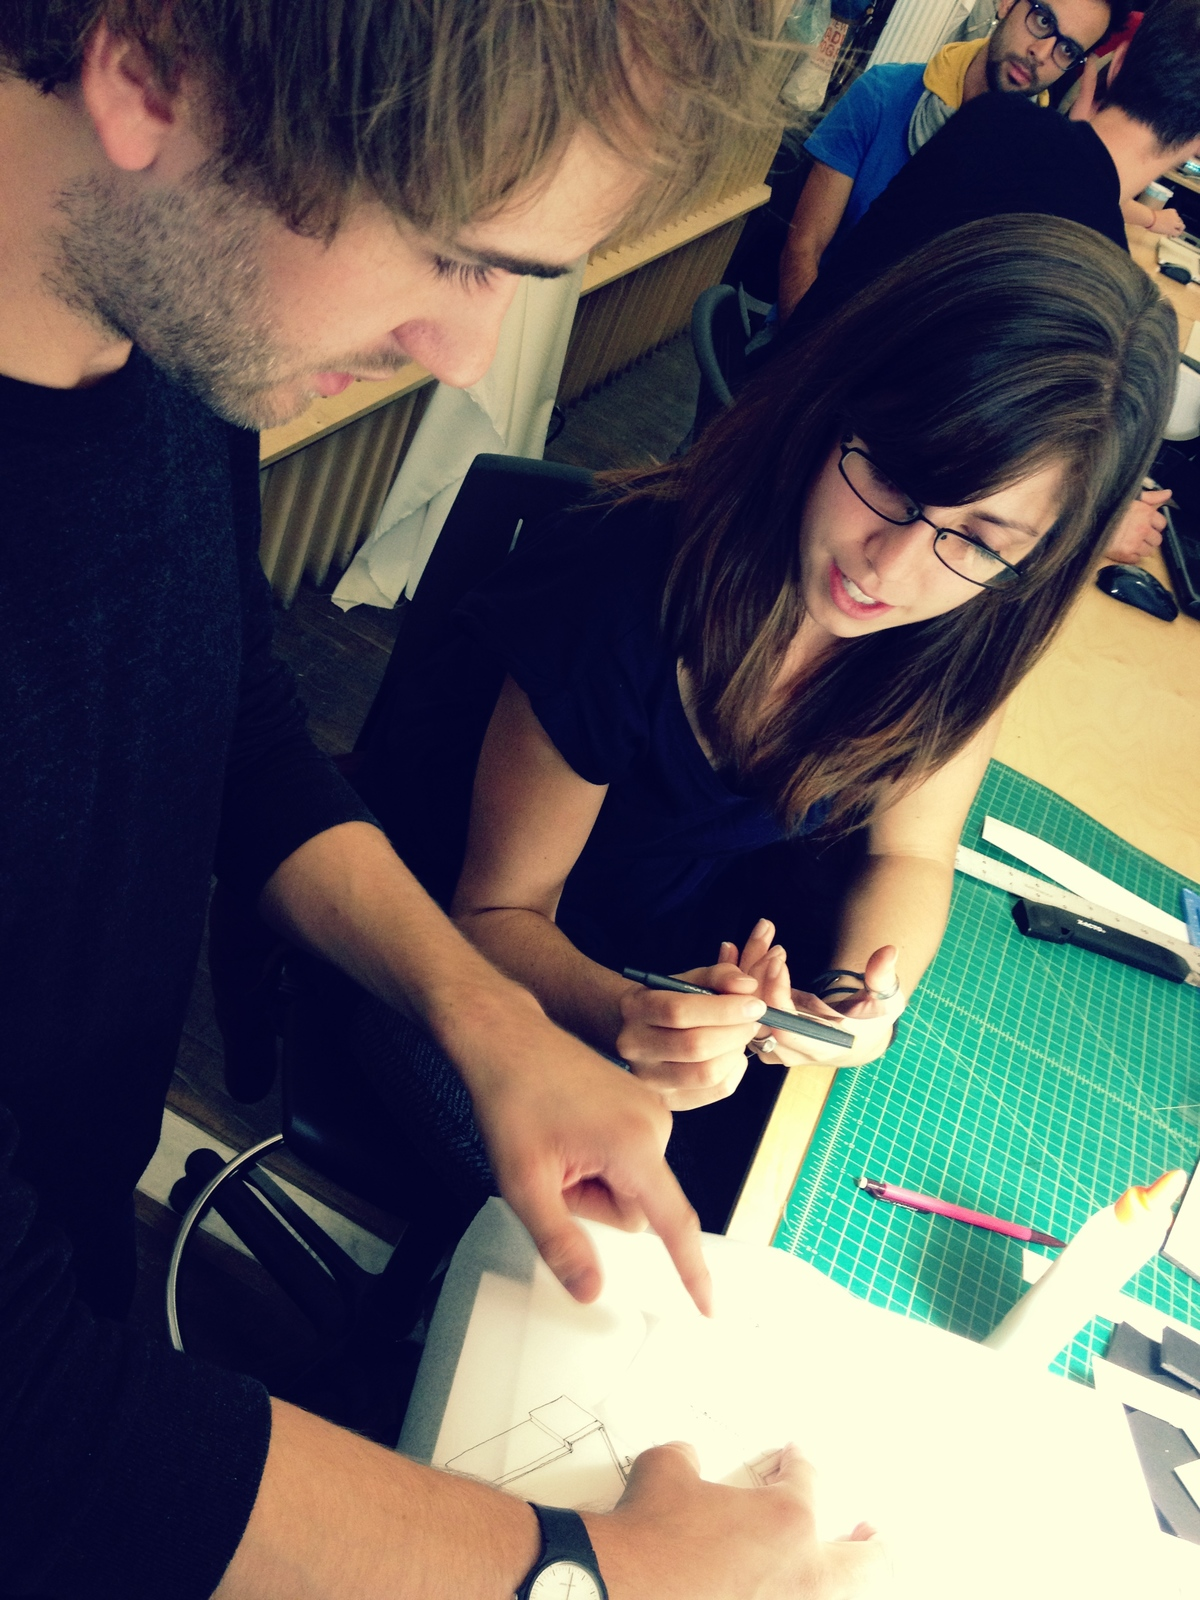 Talking through drawings: Jacinda Ross & Zach Barr